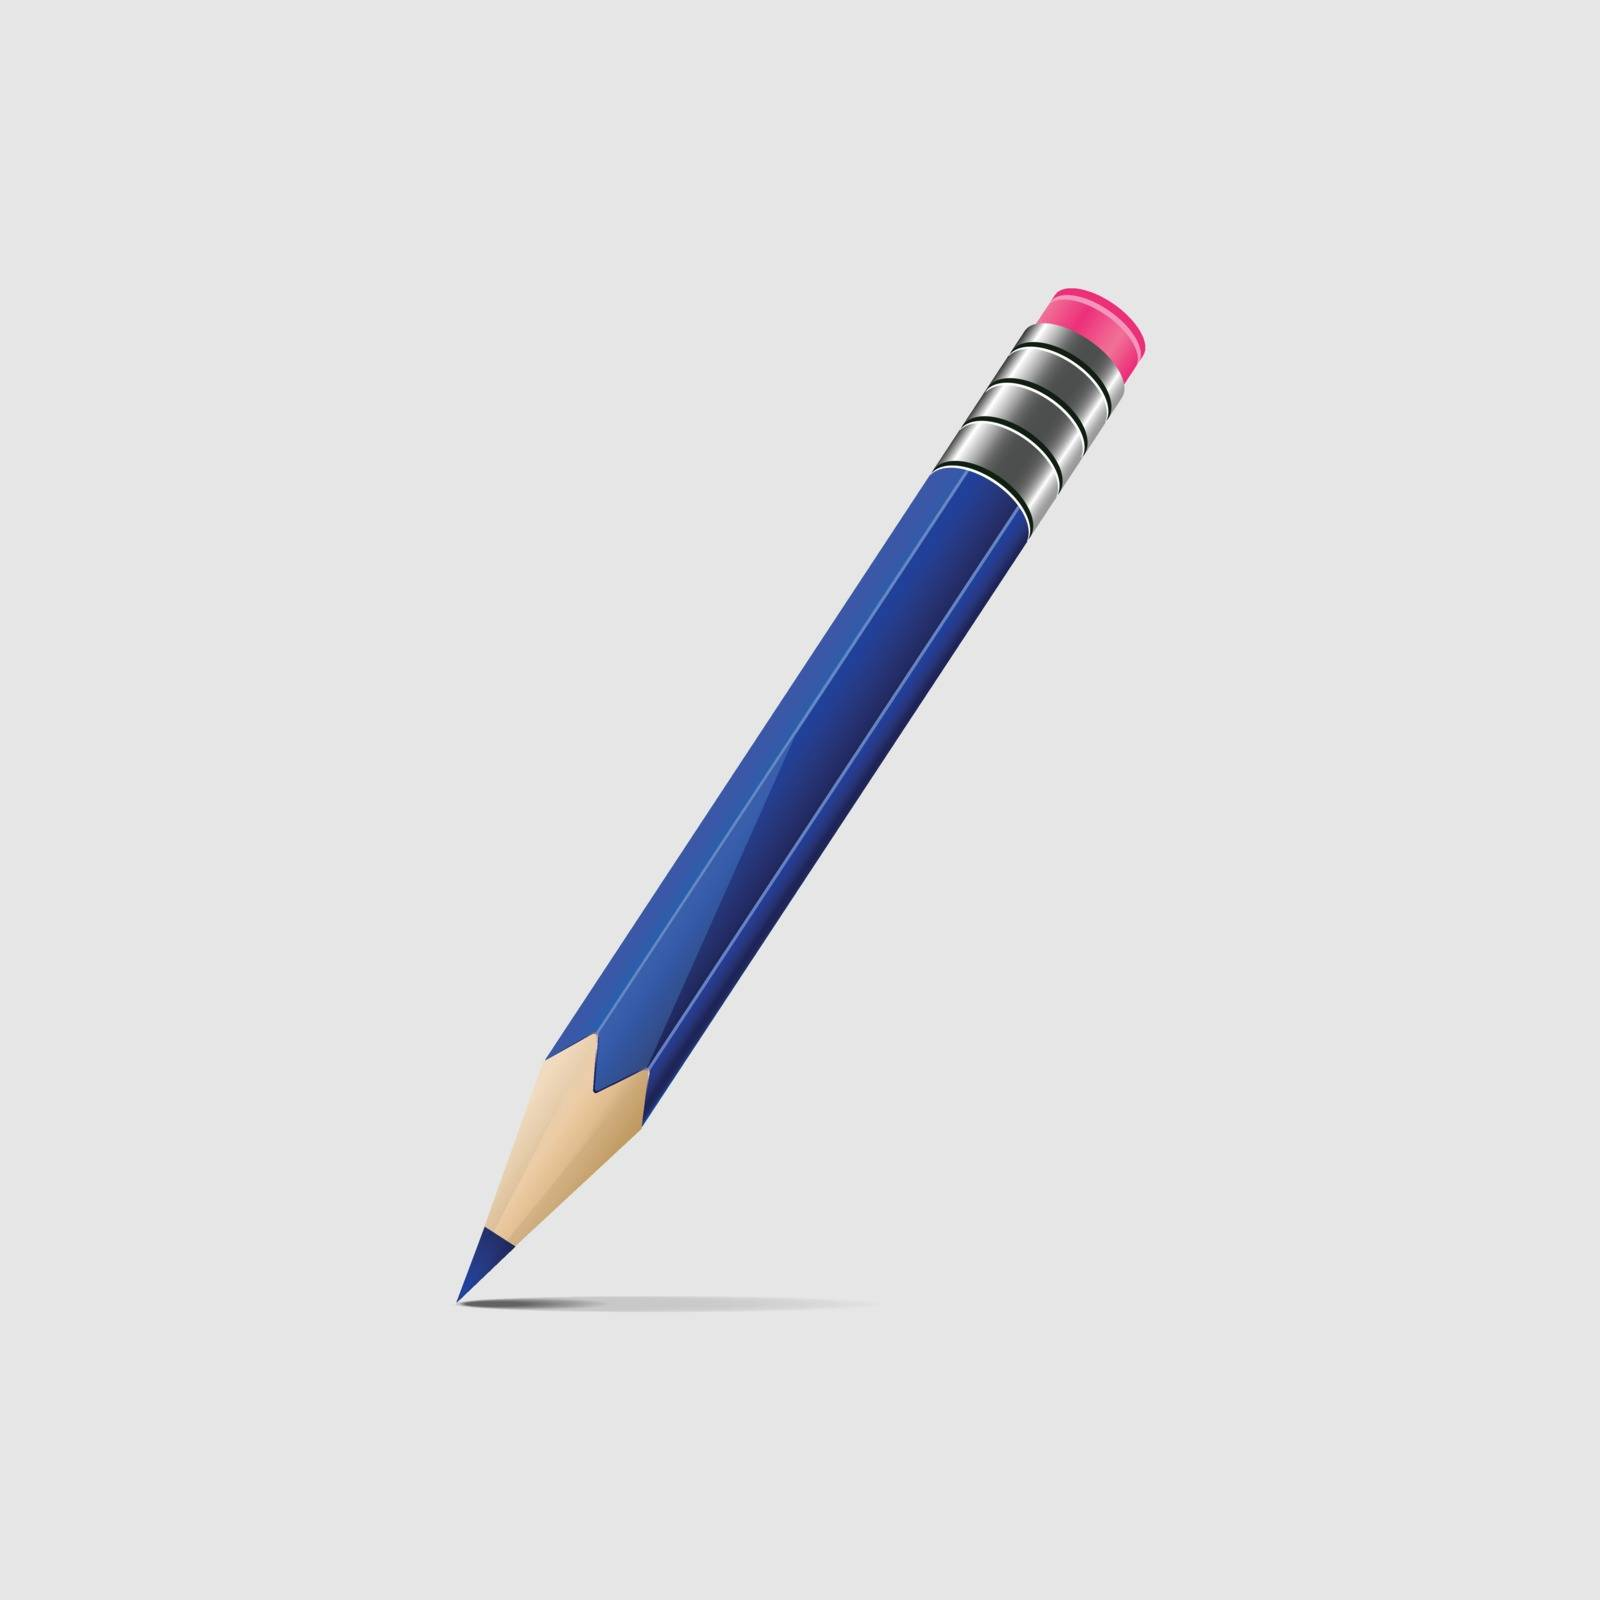 Illustration of a blue pencil isolated on light grey background